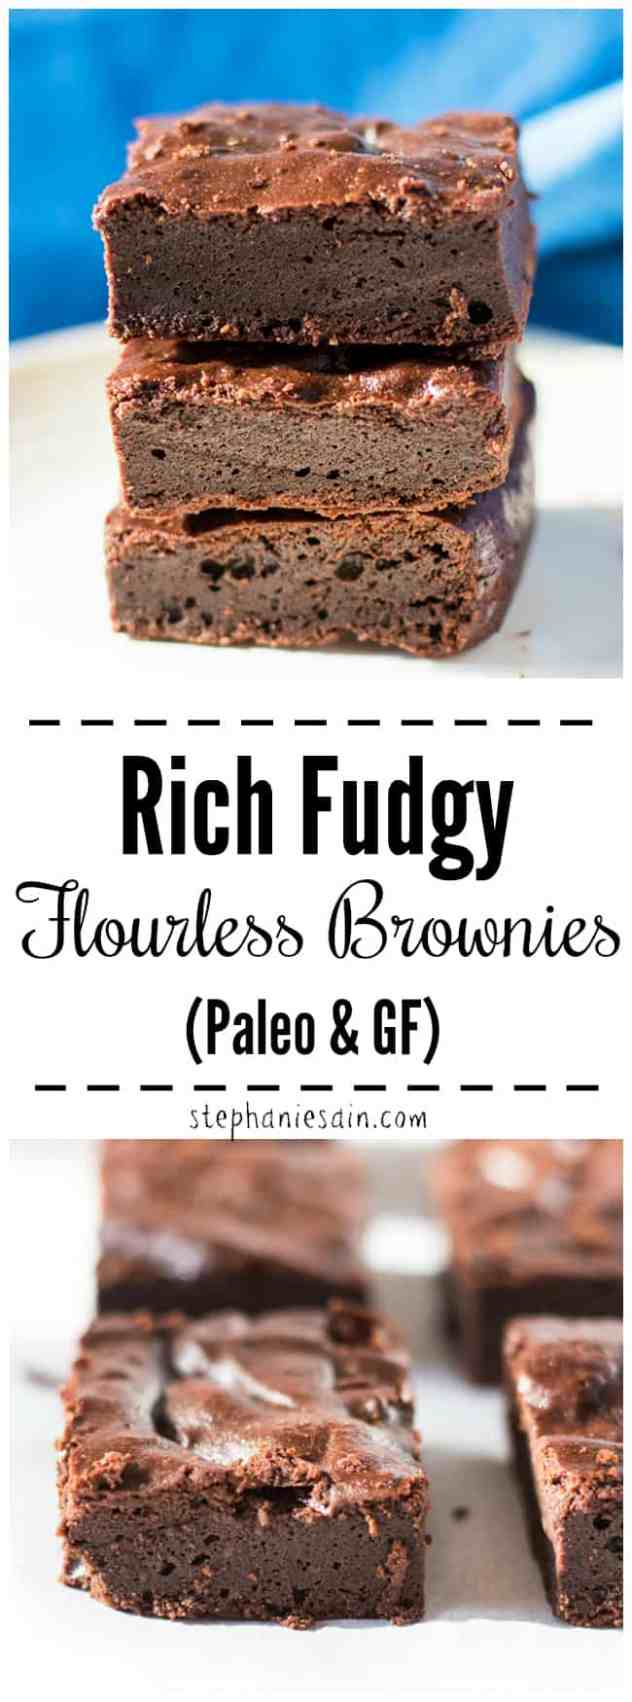 This Flourless Brownies are a rich, fudgy decadent chocolate treat. You'll never miss the flour in these brownies. Perfect way to satisfy chocolate cravings. Paleo, Gluten Free & No added refined sugars.